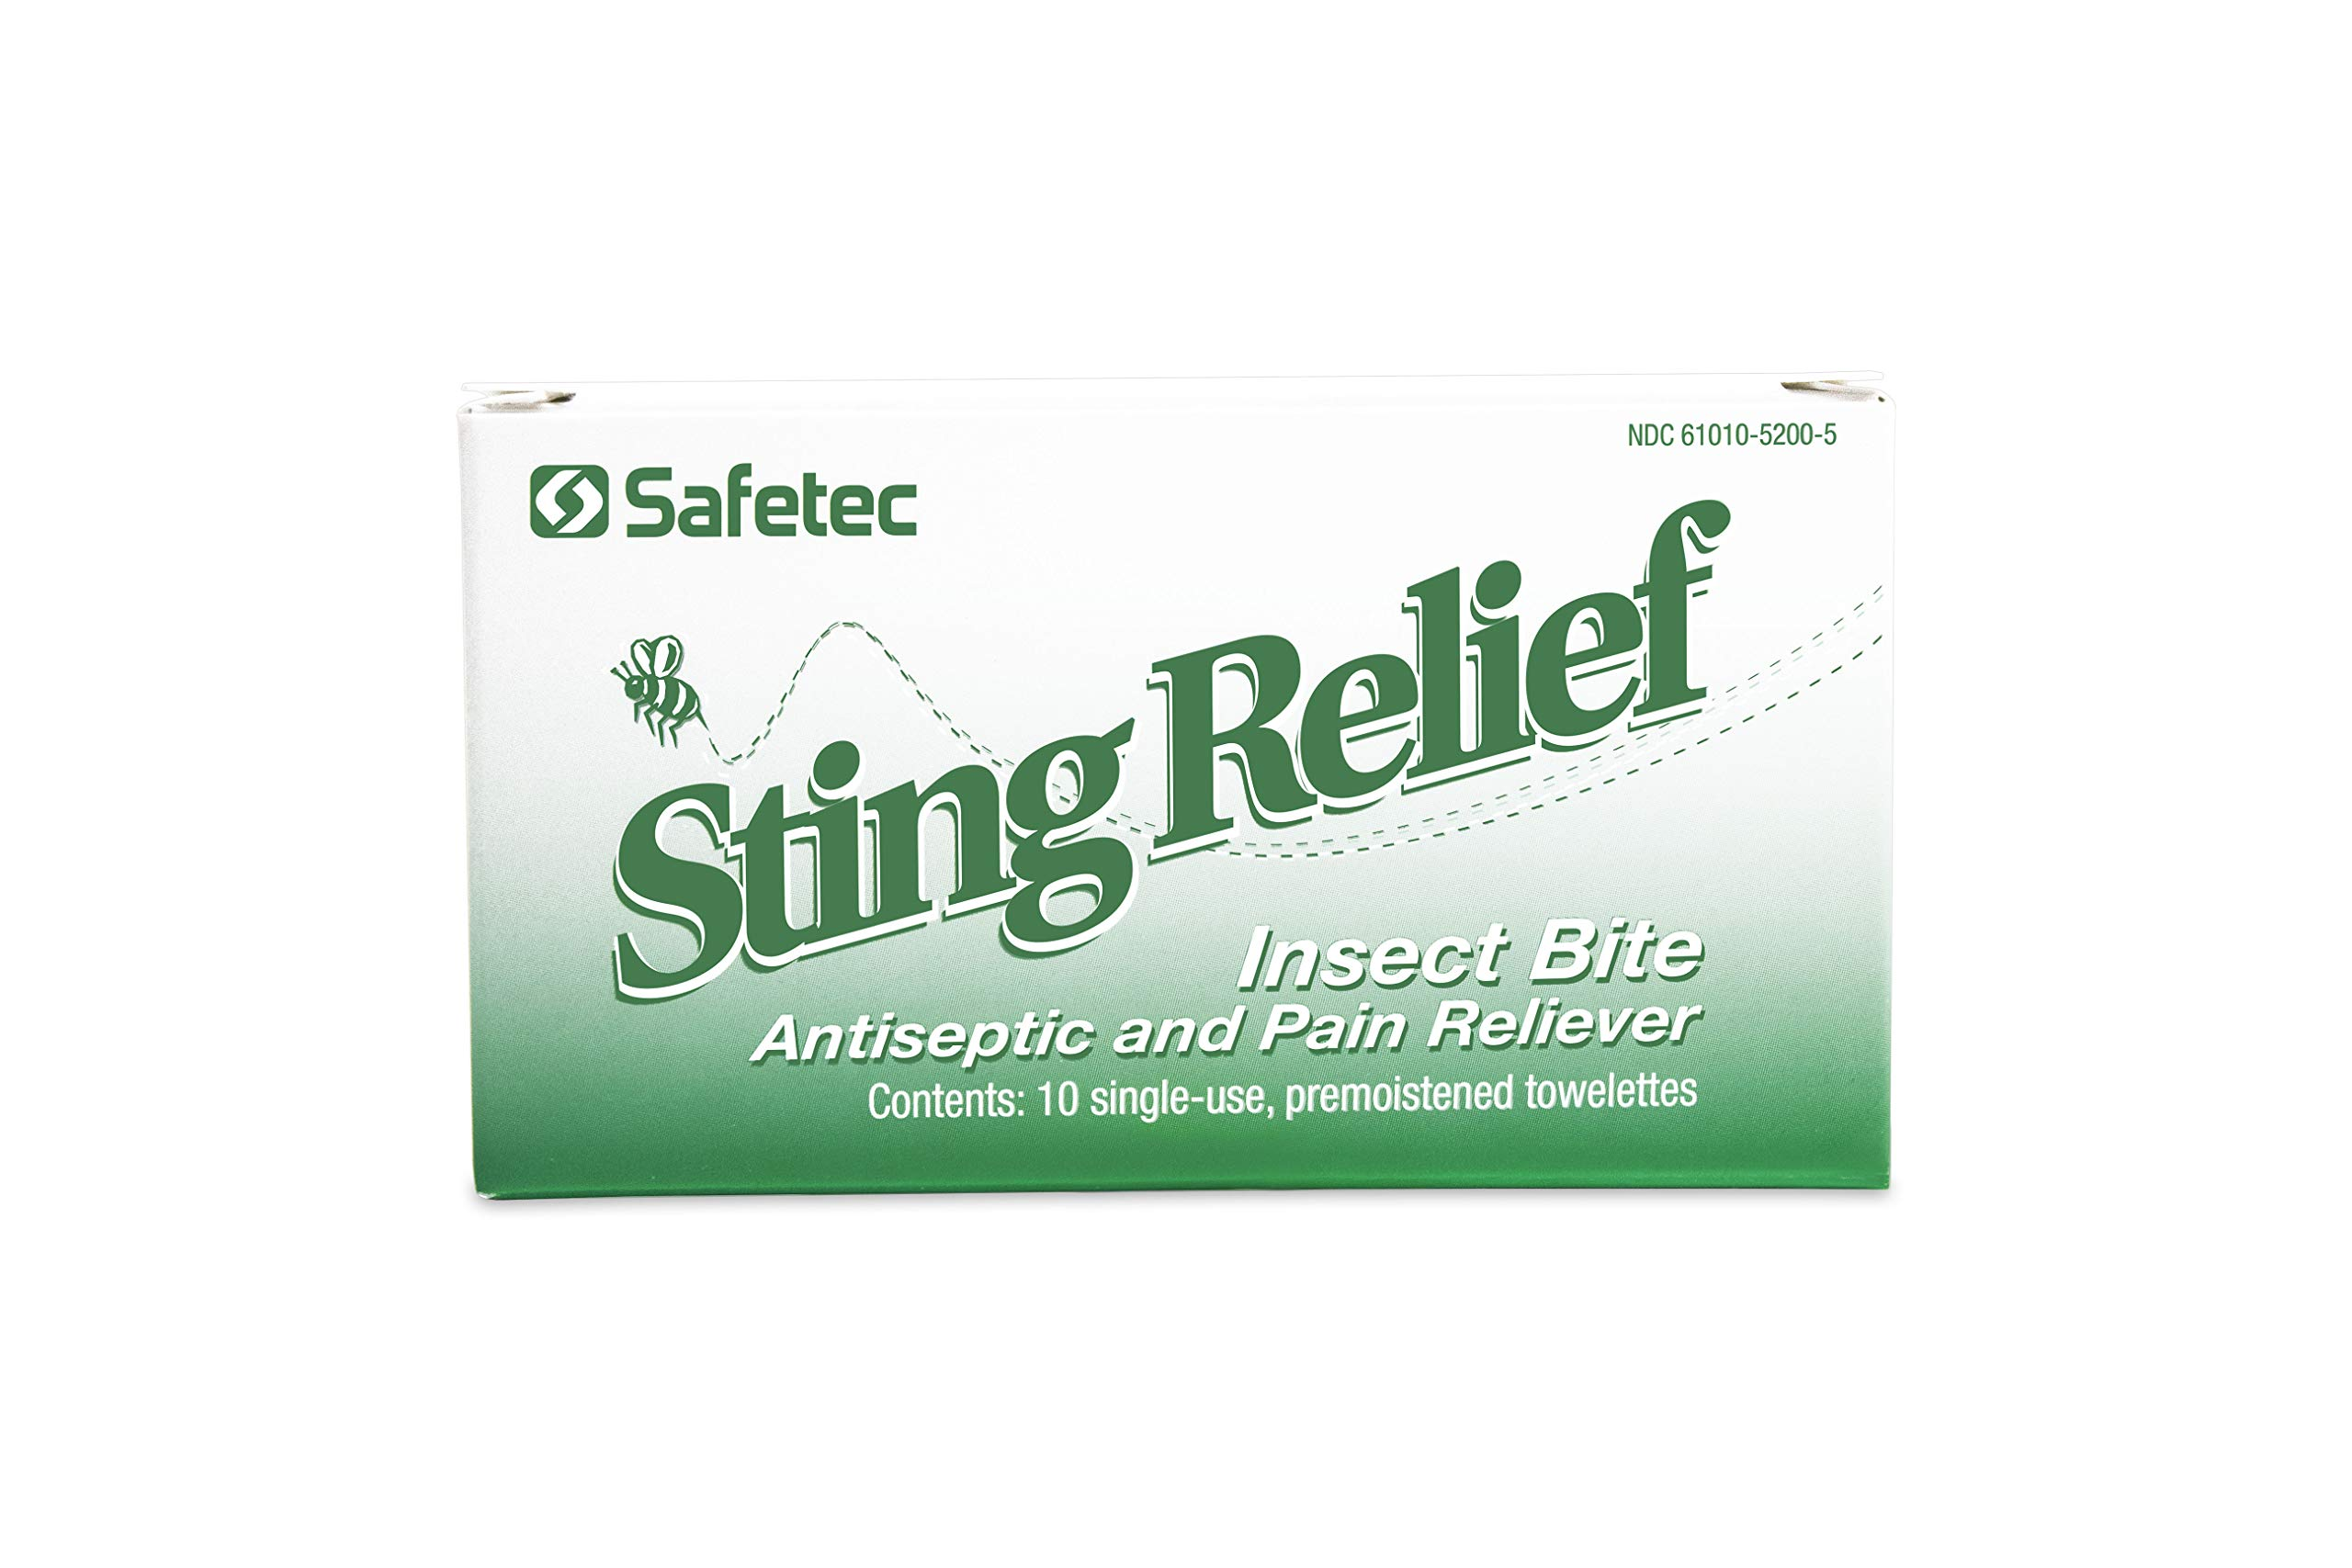 Safetec Sting Relief Wipe 10 ct. Box (100 Boxes/case) - for Relief from Pain and Itching Caused by Insect Stings and Bites by Safetec